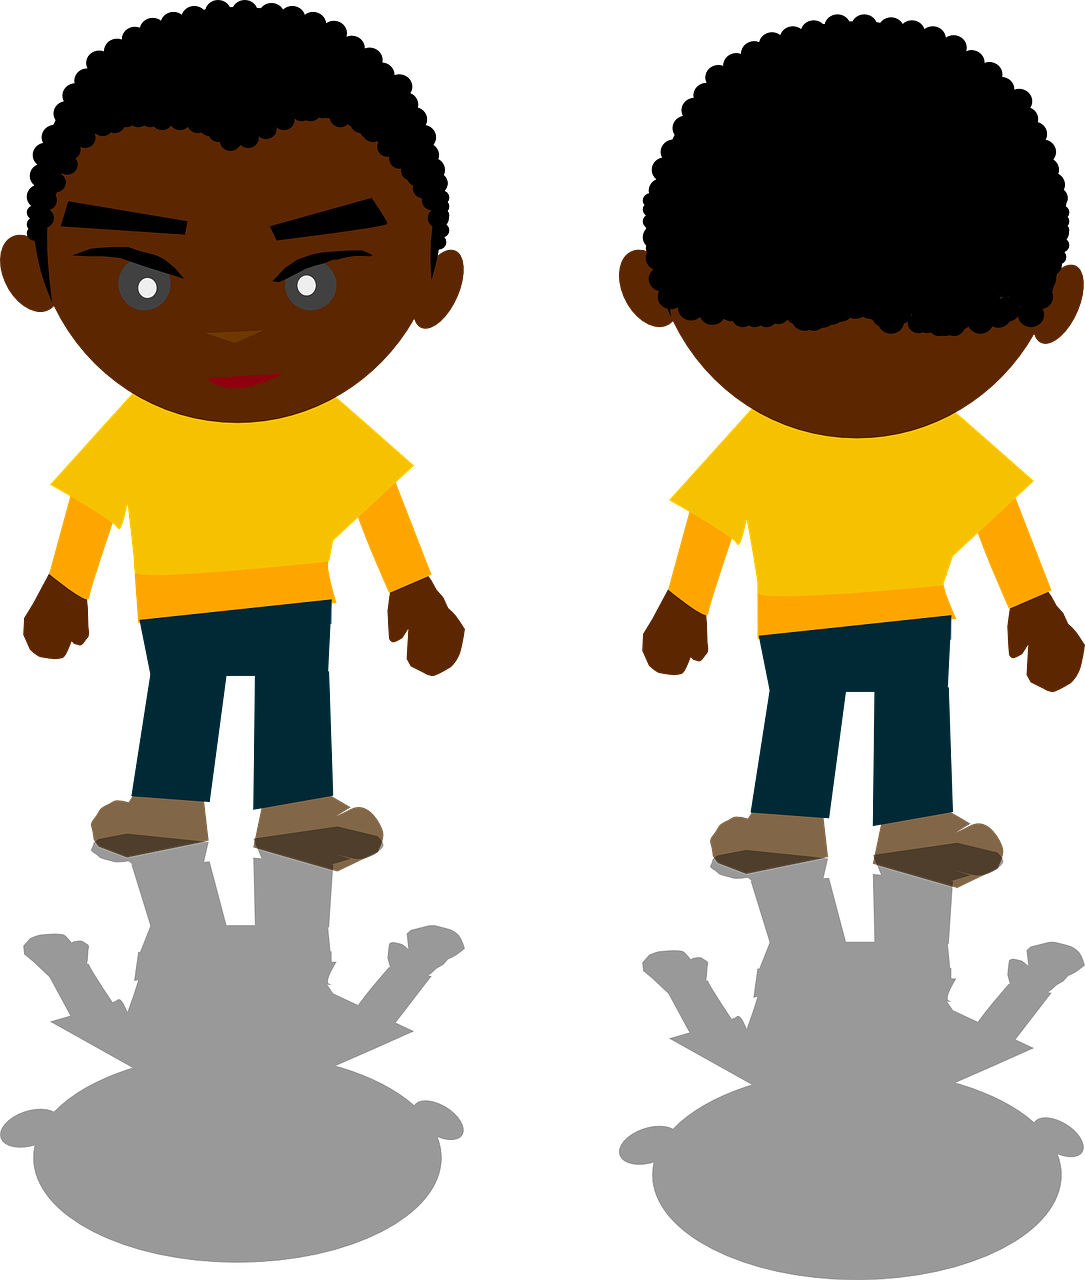 boy,kids,human,little,african,american,children,standing,sad,boys,childhood,shadow,free vector graphics,free pictures, free photos, free images, royalty free, free illustrations, public domain